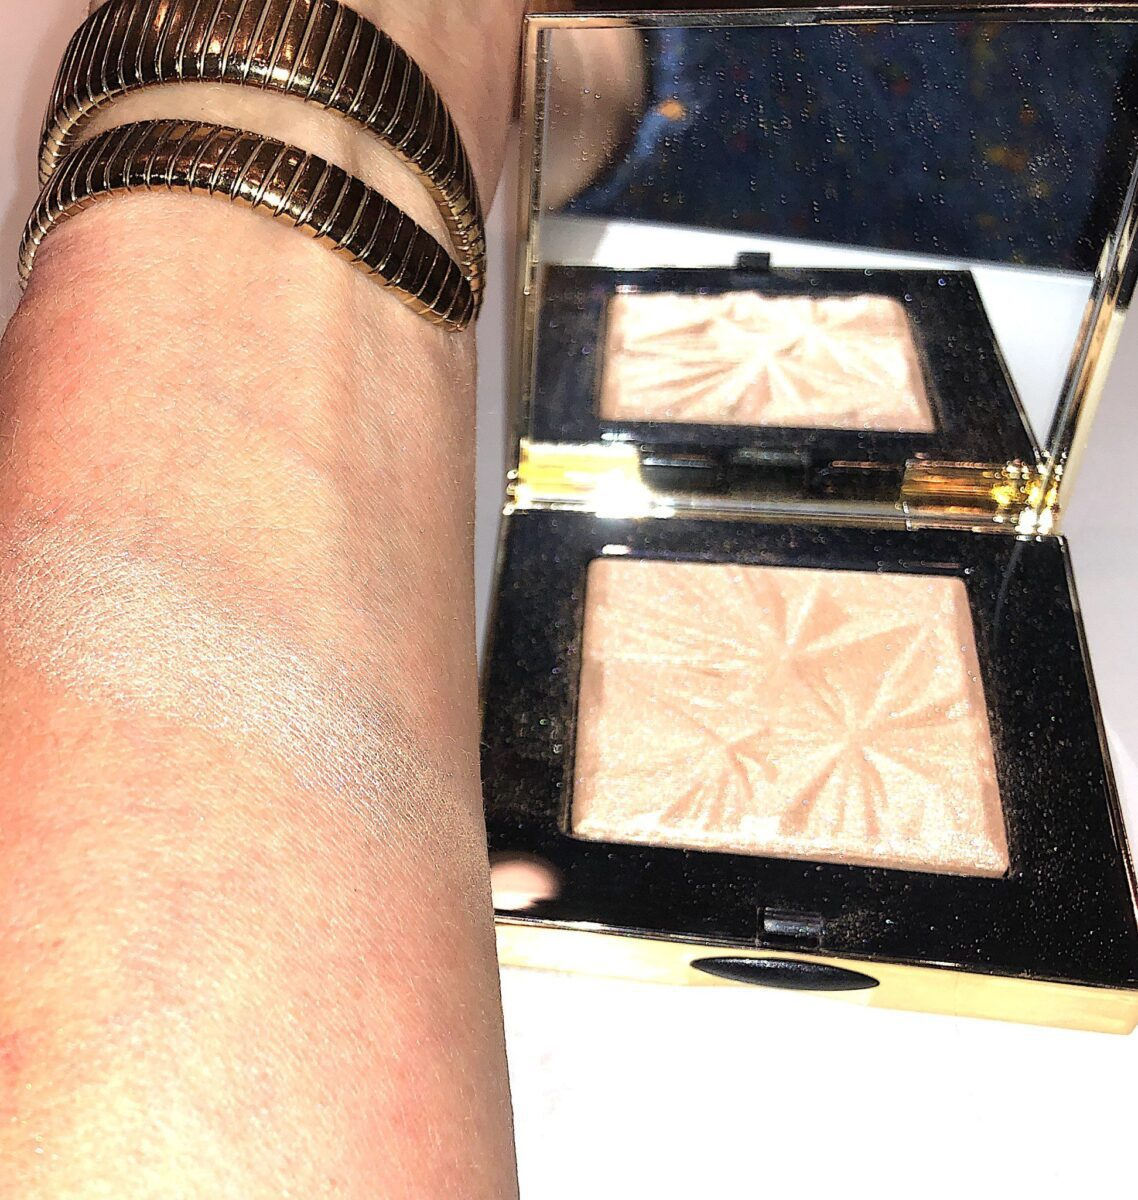 SWATCH OF THE BOBBI BROWN ILLUMINATING HIGHLIGHTER IN THE SHADE GOLDEN HOUR